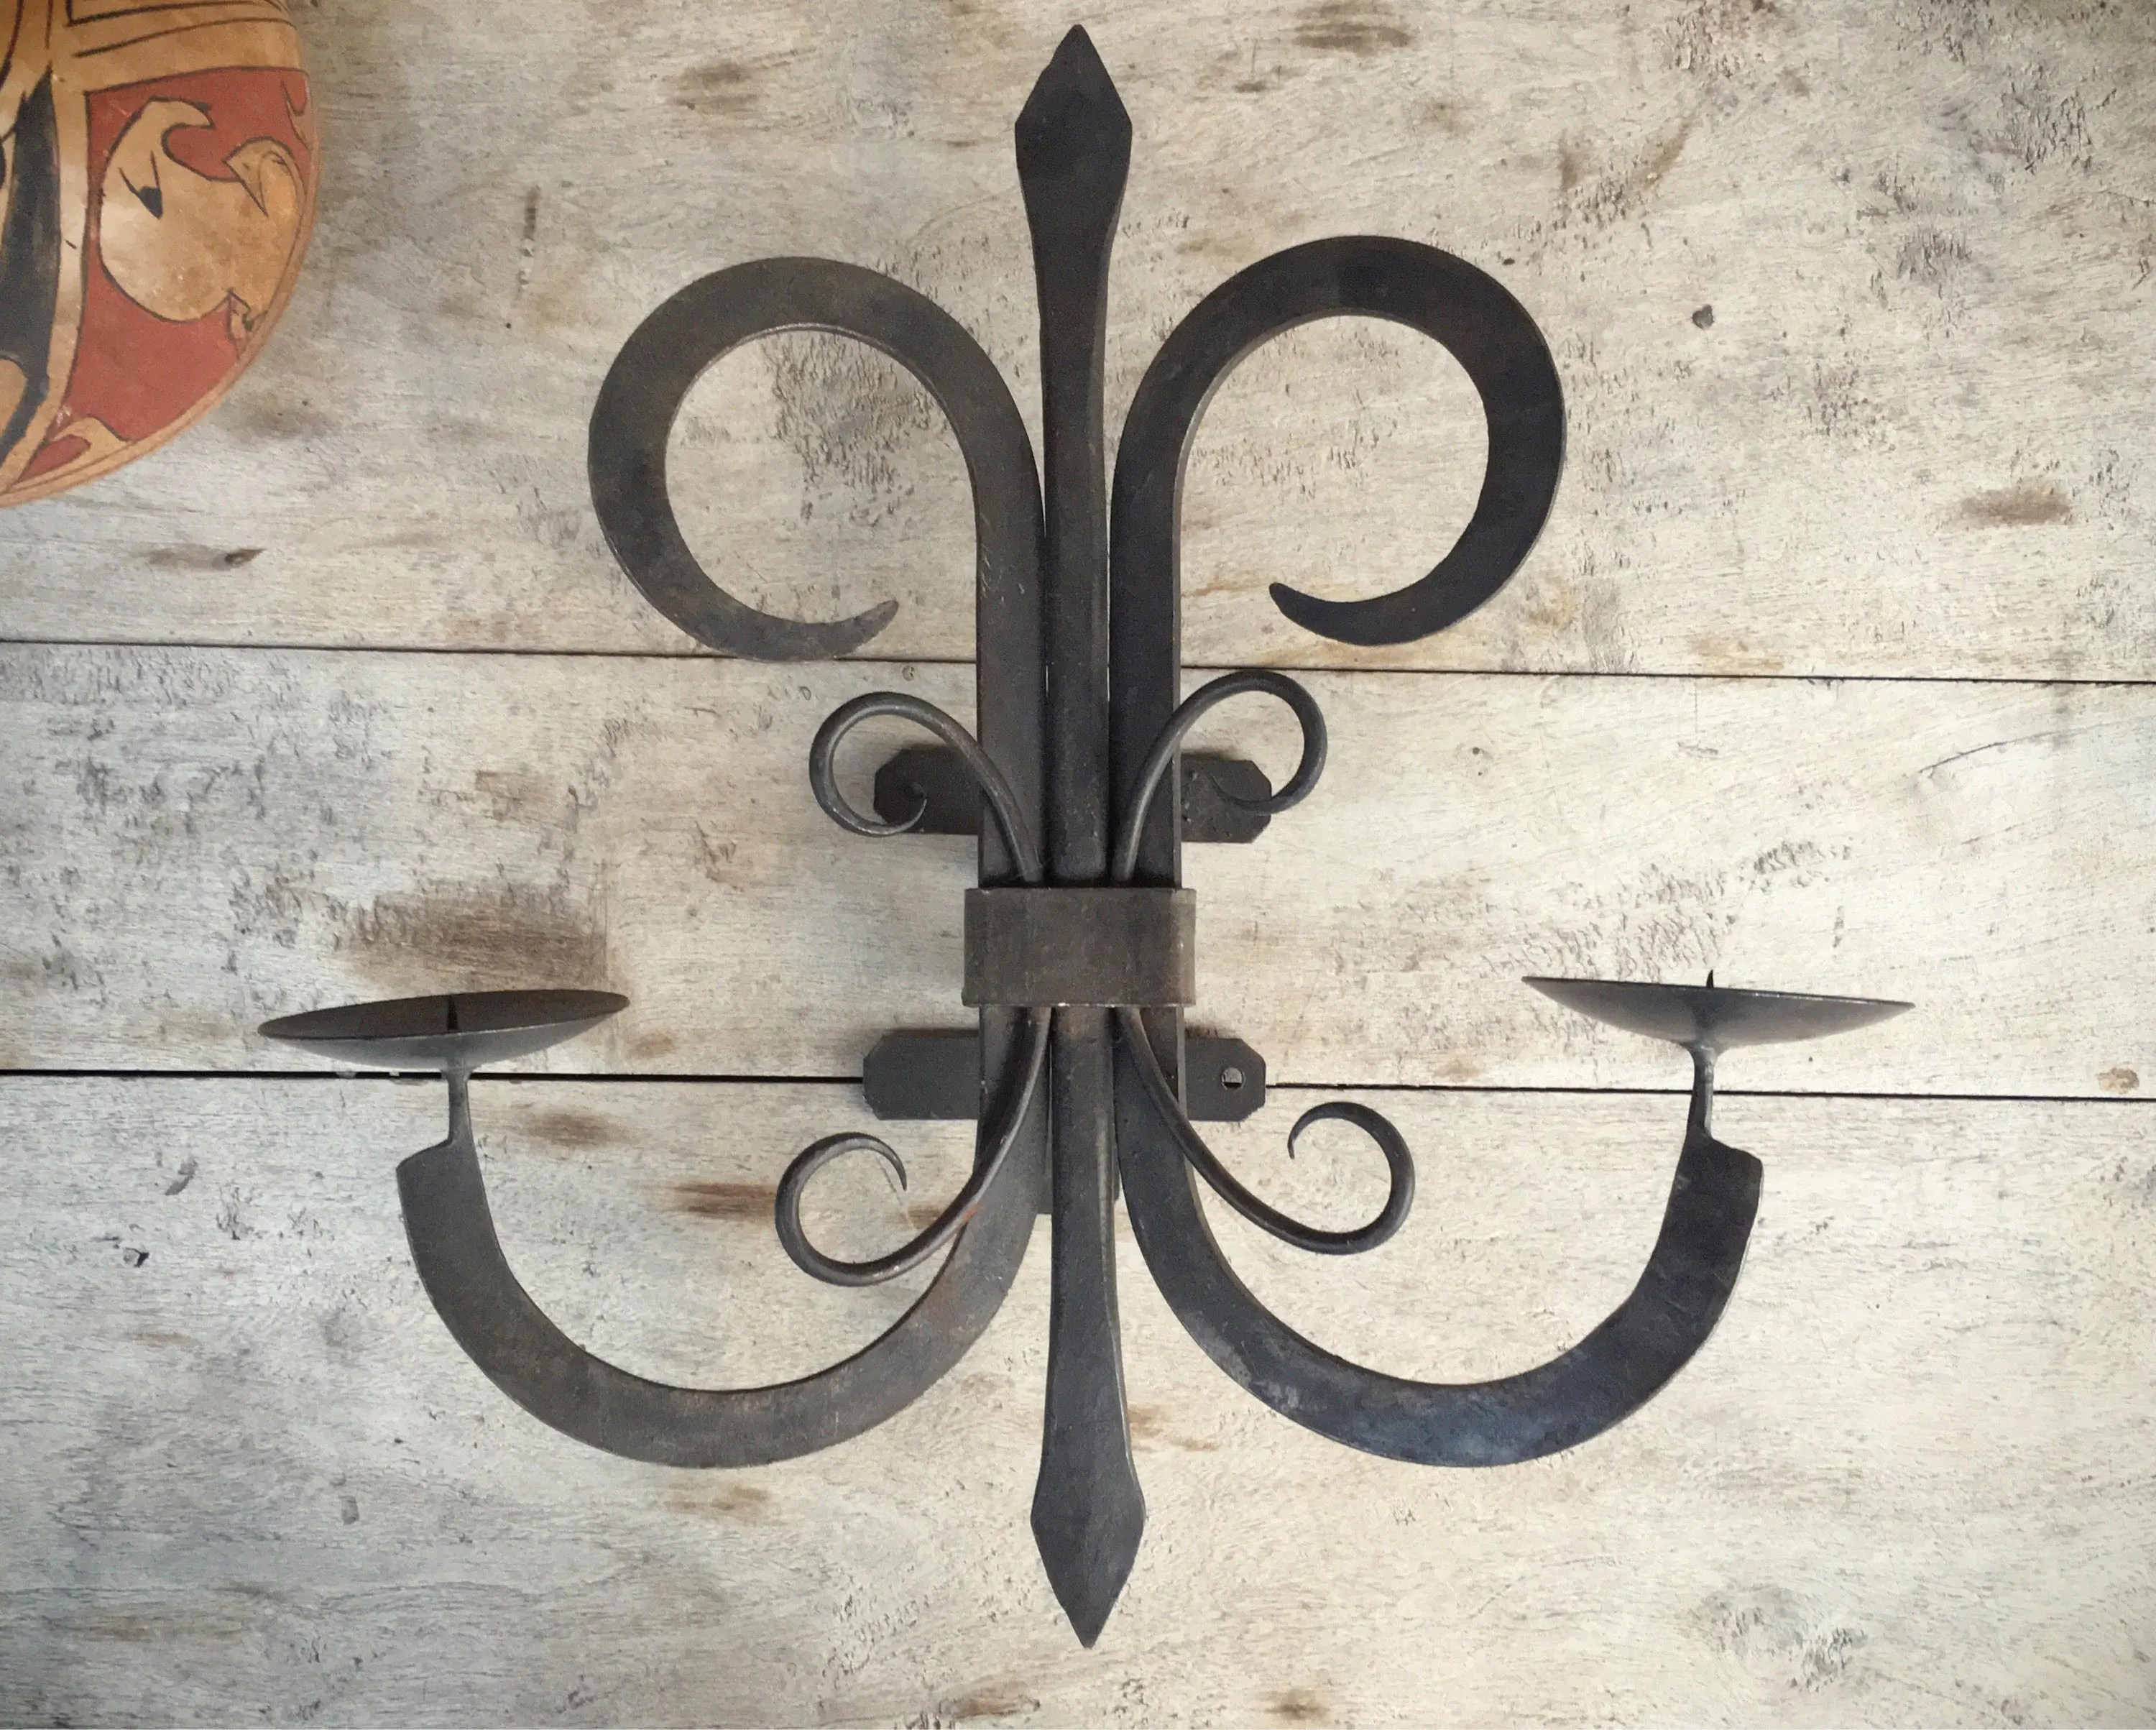 Vintage Mexican rustic candle sconce, wall mounted wrought ... on Antique Wrought Iron Wall Candle Holders id=16394